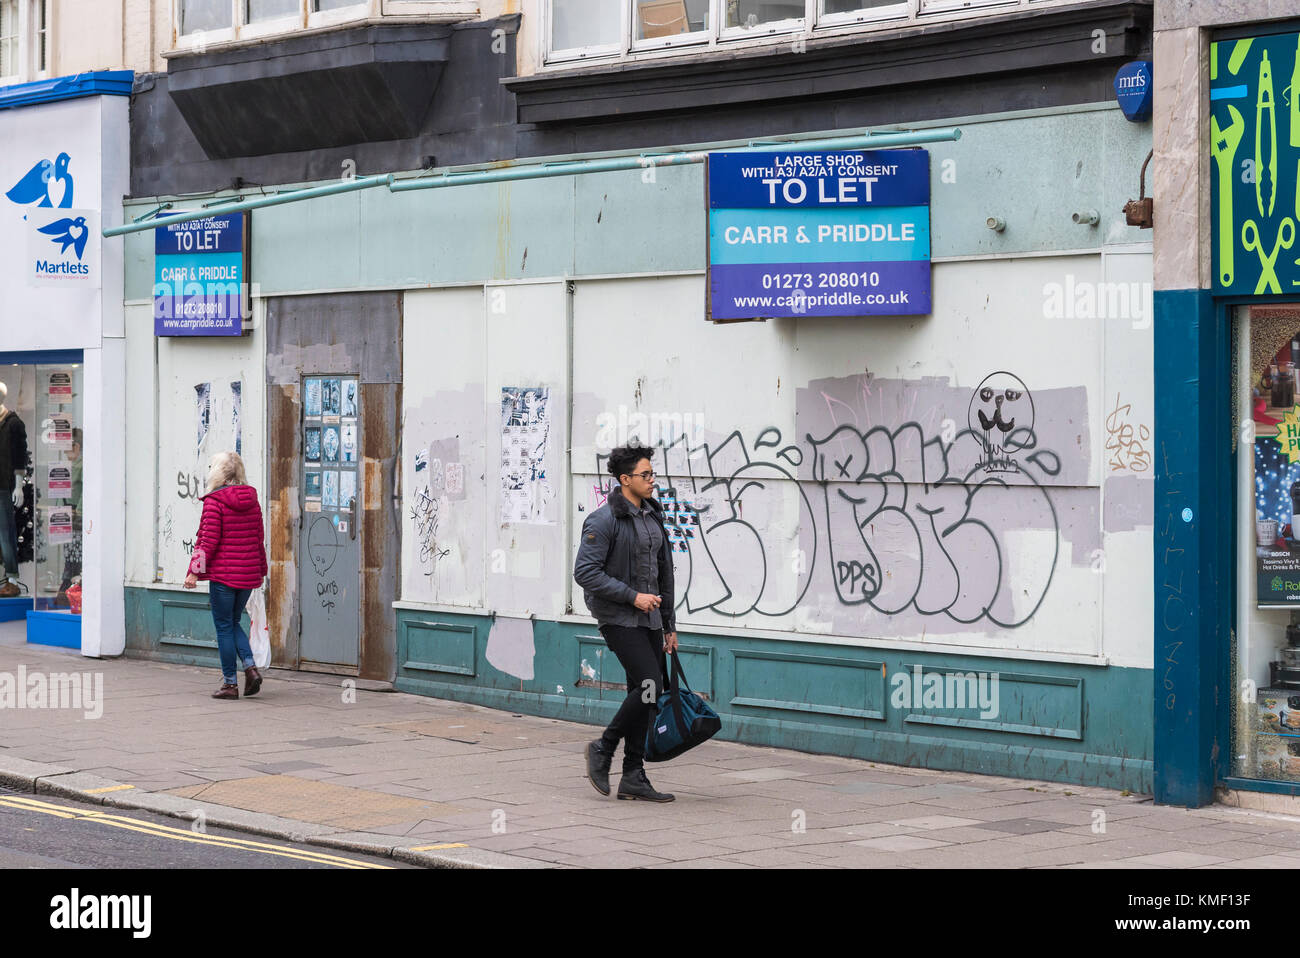 Large shop to let with 'to let' signs outside in a city in the UK. - Stock Image